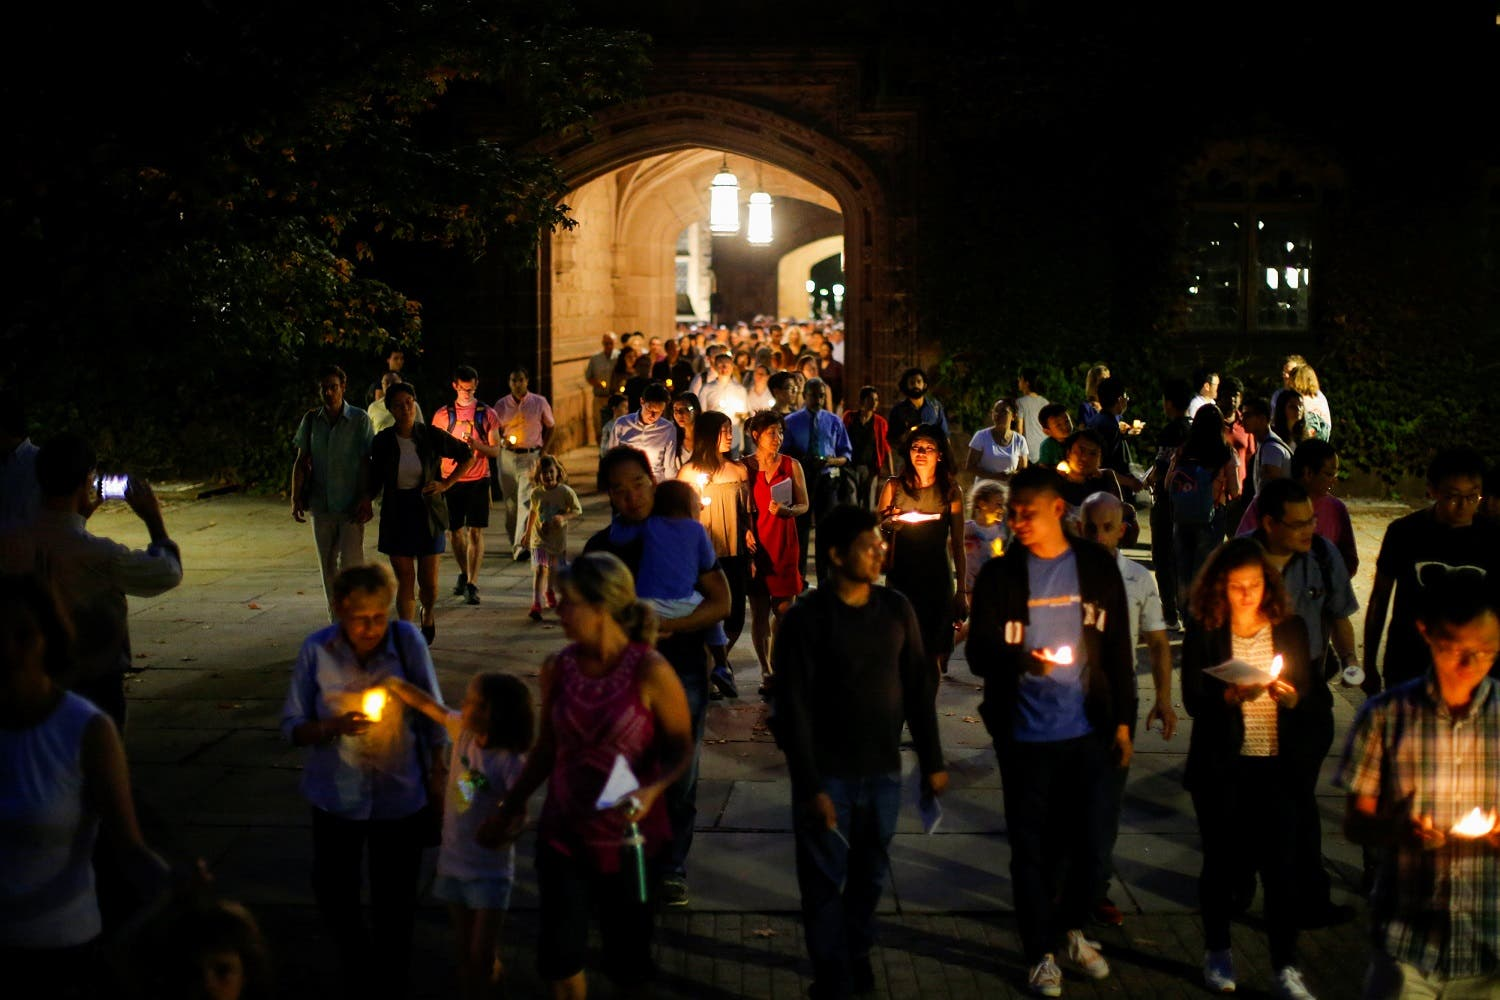 People attend a vigil for Xiyue Wang at Princeton University on September 15, 2017. (Reuters)